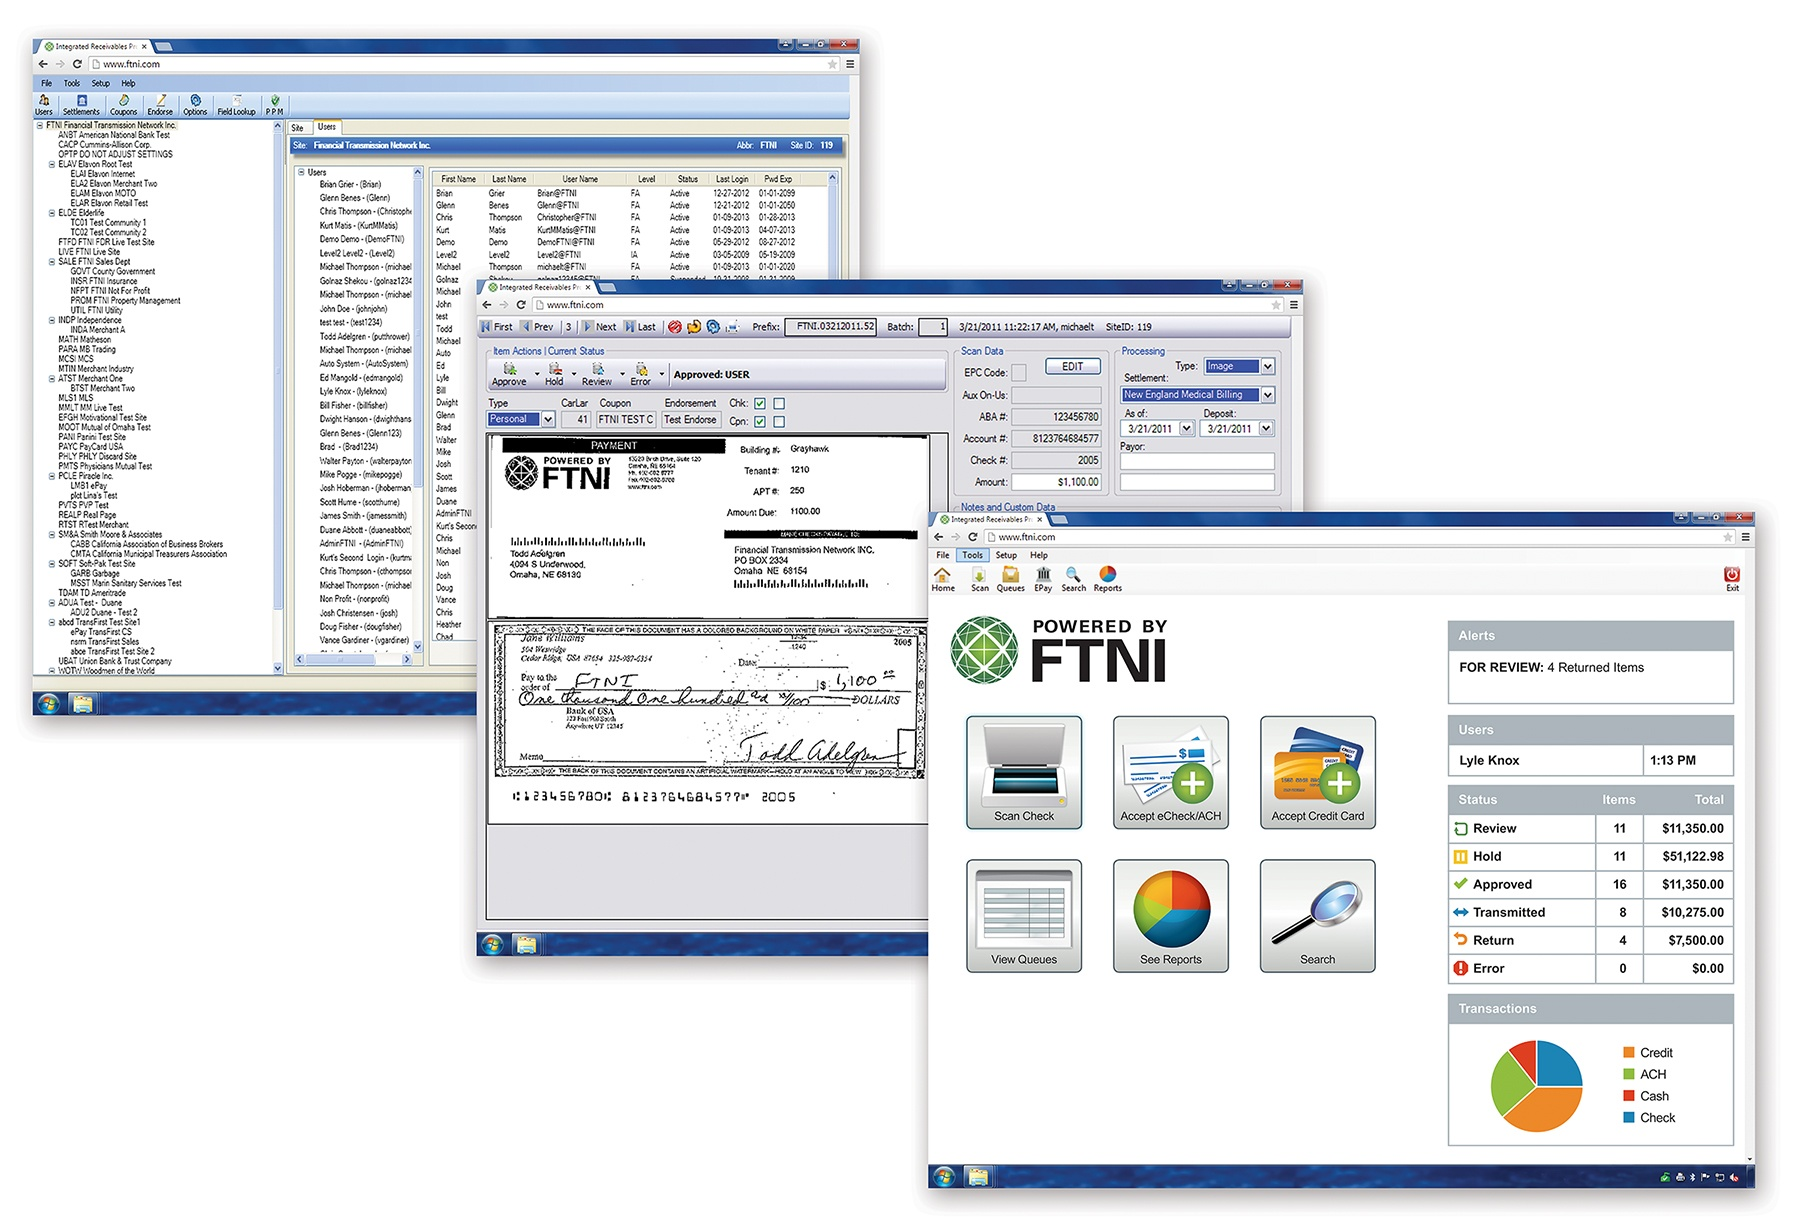 ETran Integrated Receivables Hub Interfaces | FTNI